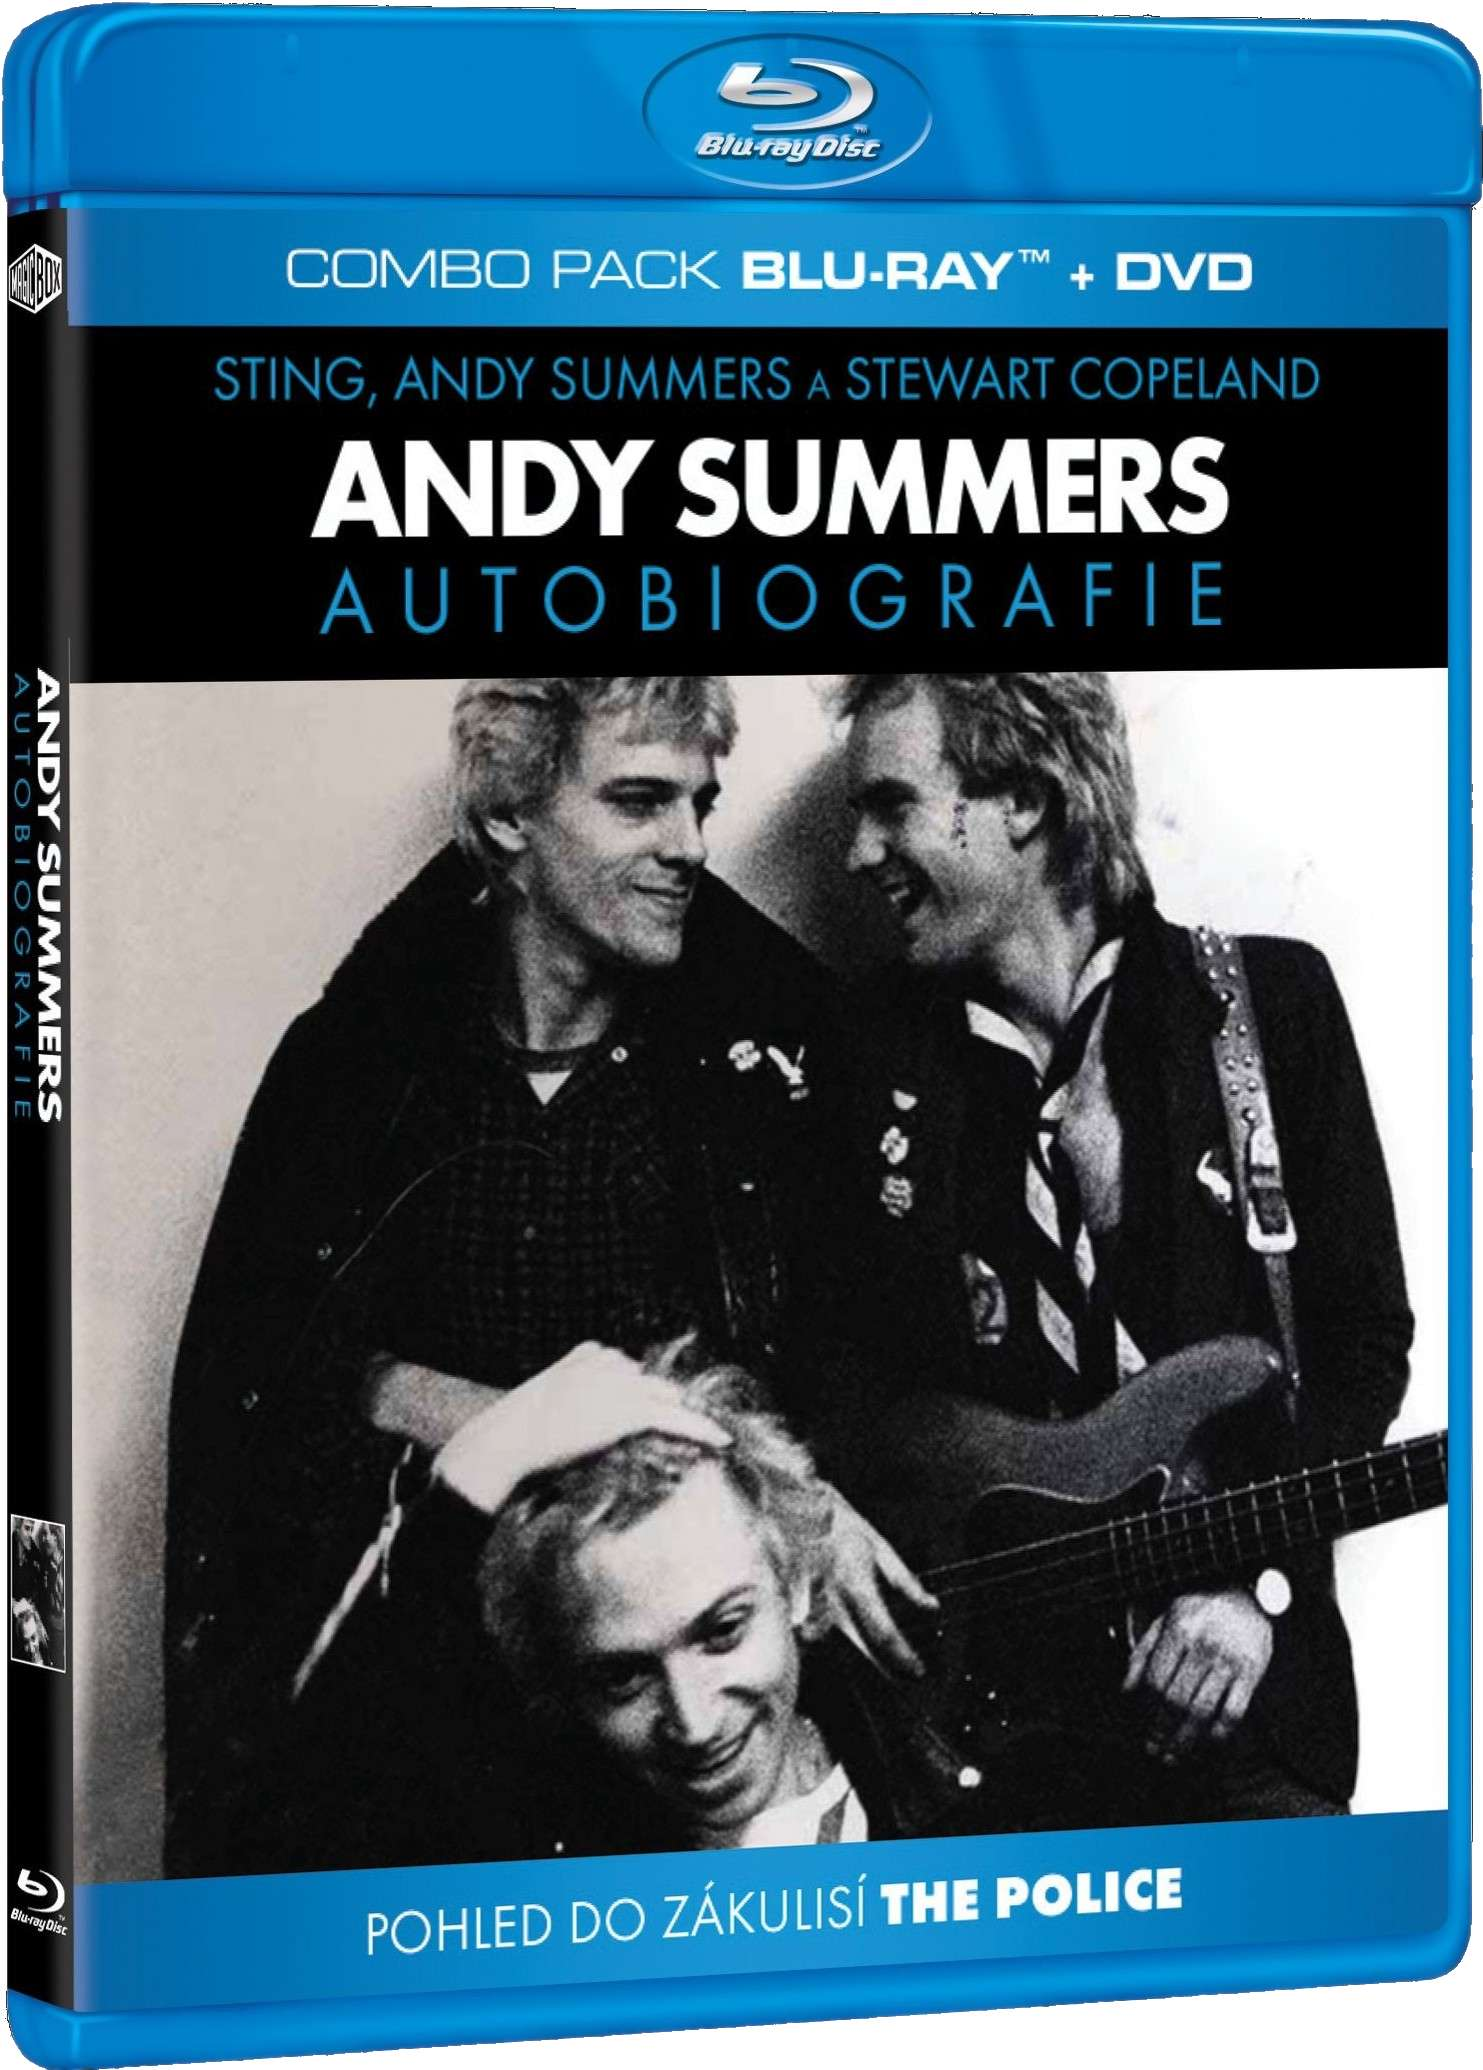 Andy Summers - autobiografie - Blu-ray + DVD